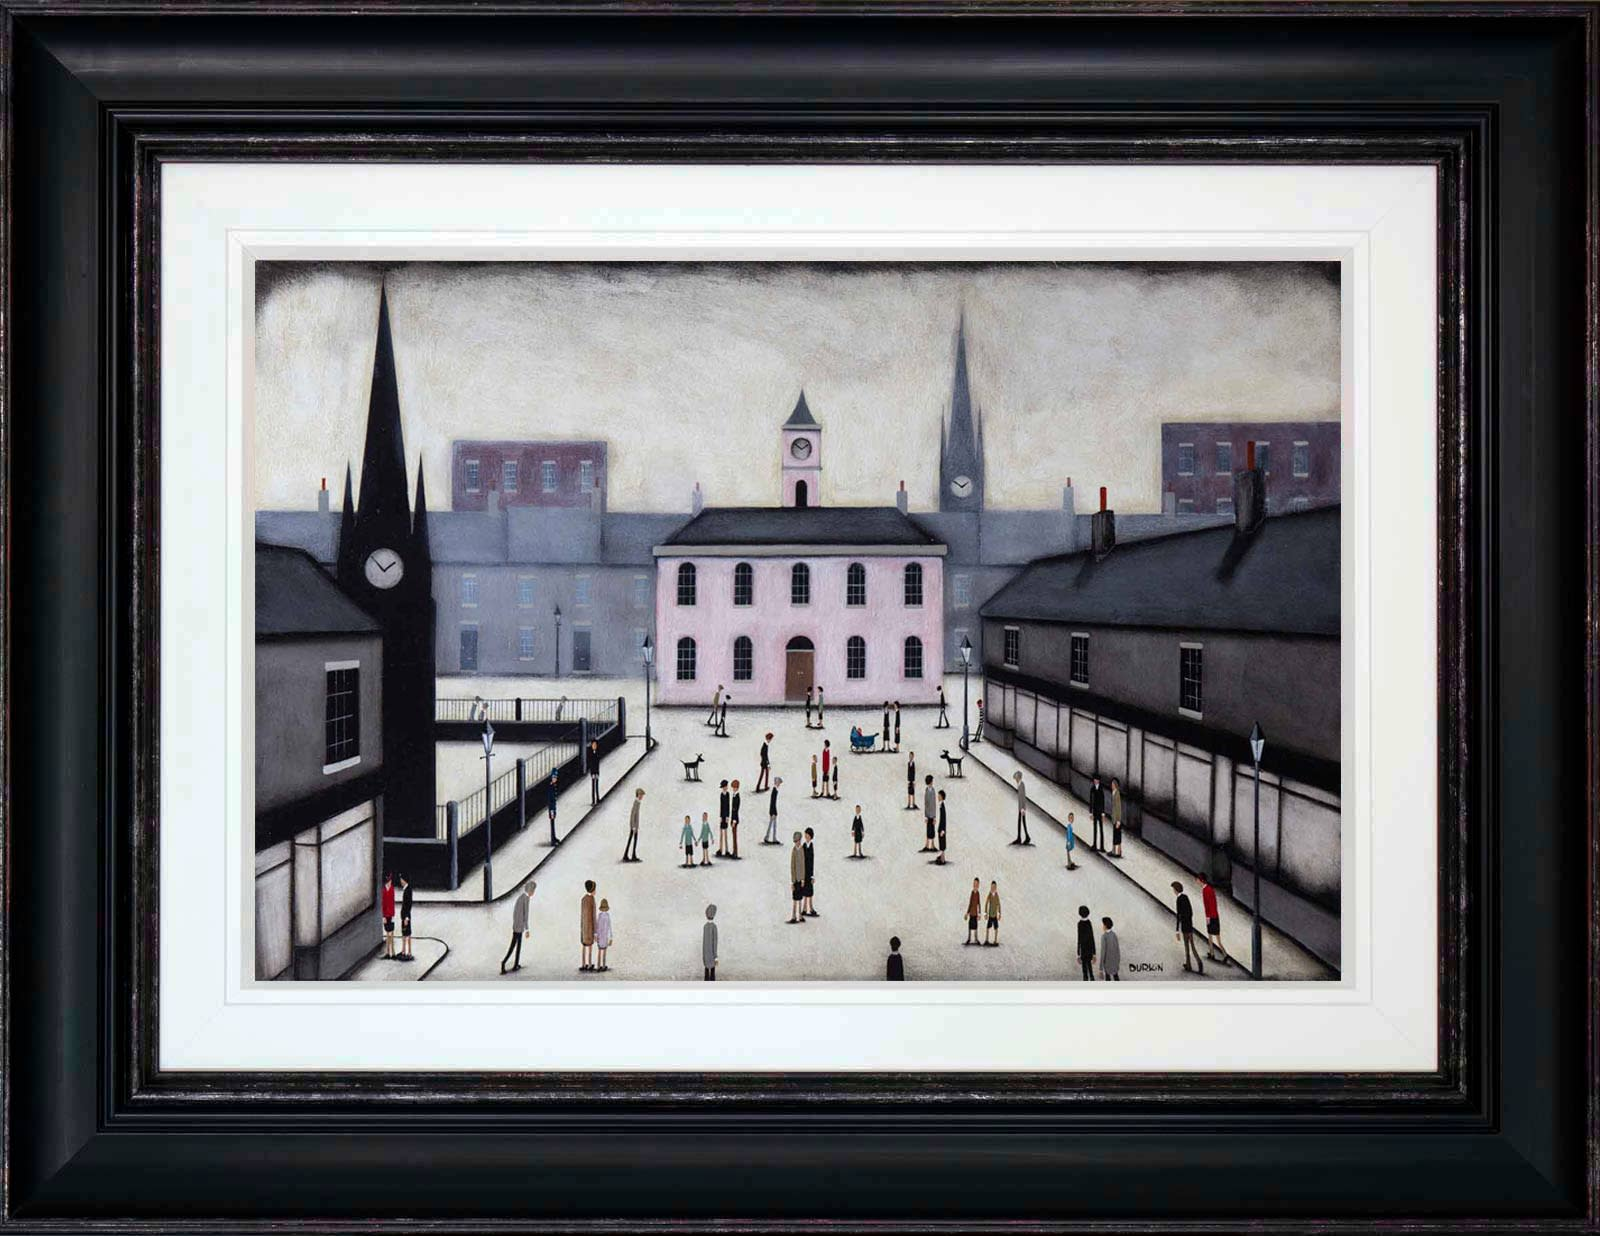 Town Hall Square, Sean Durkin